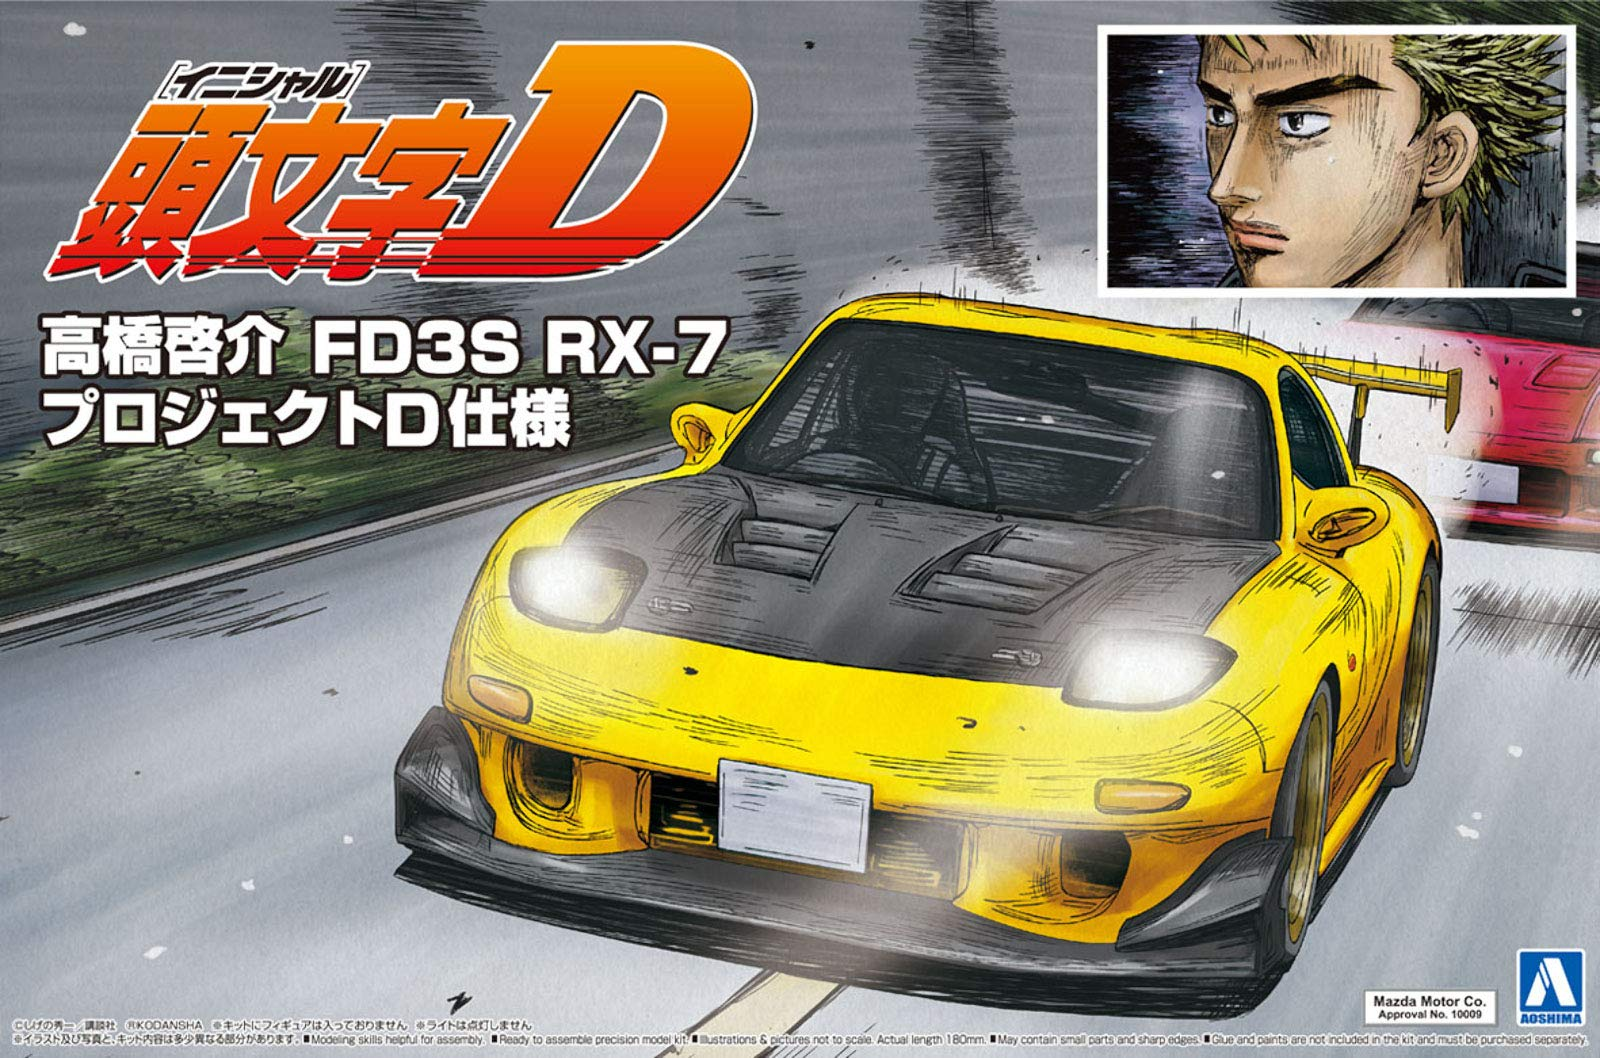 Aoshima 1/24 Scalei Initial D No.8 Takahashi FD3S RX-7 Project D - Plastic Car Model Kit # 56202